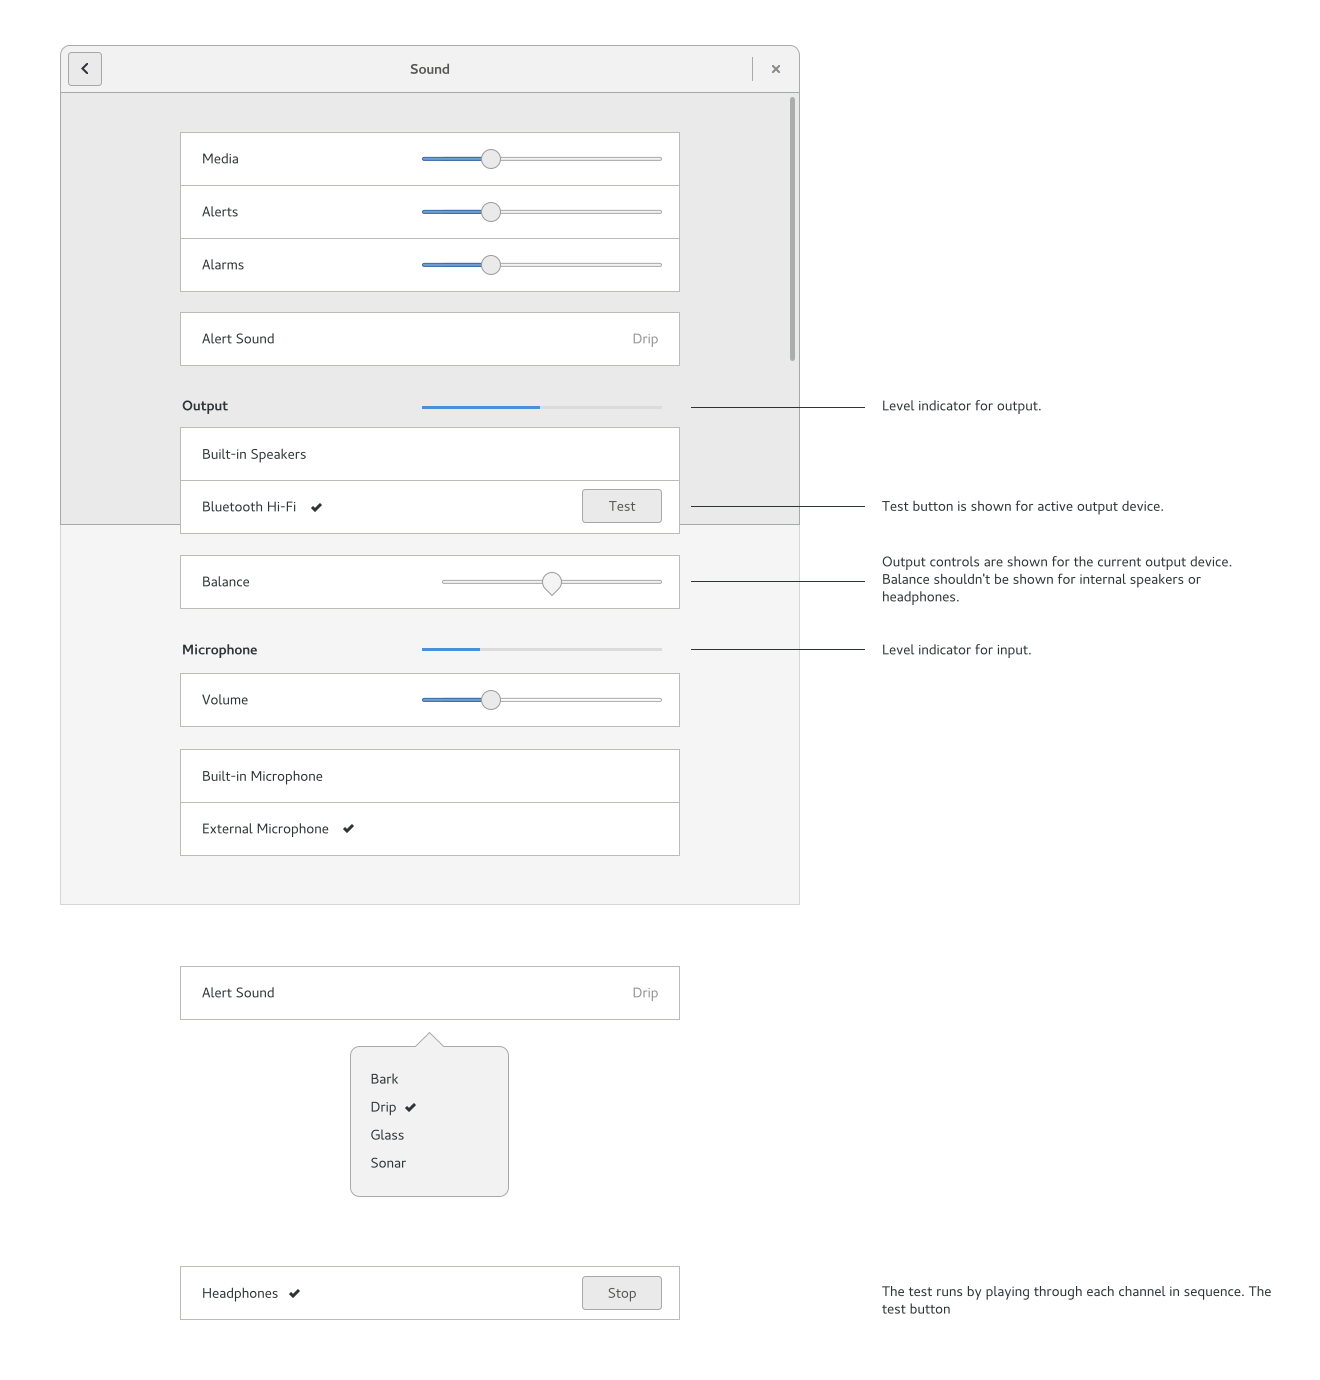 https://raw.githubusercontent.com/gnome-design-team/gnome-mockups/master/system-settings/sound/sound-new.png